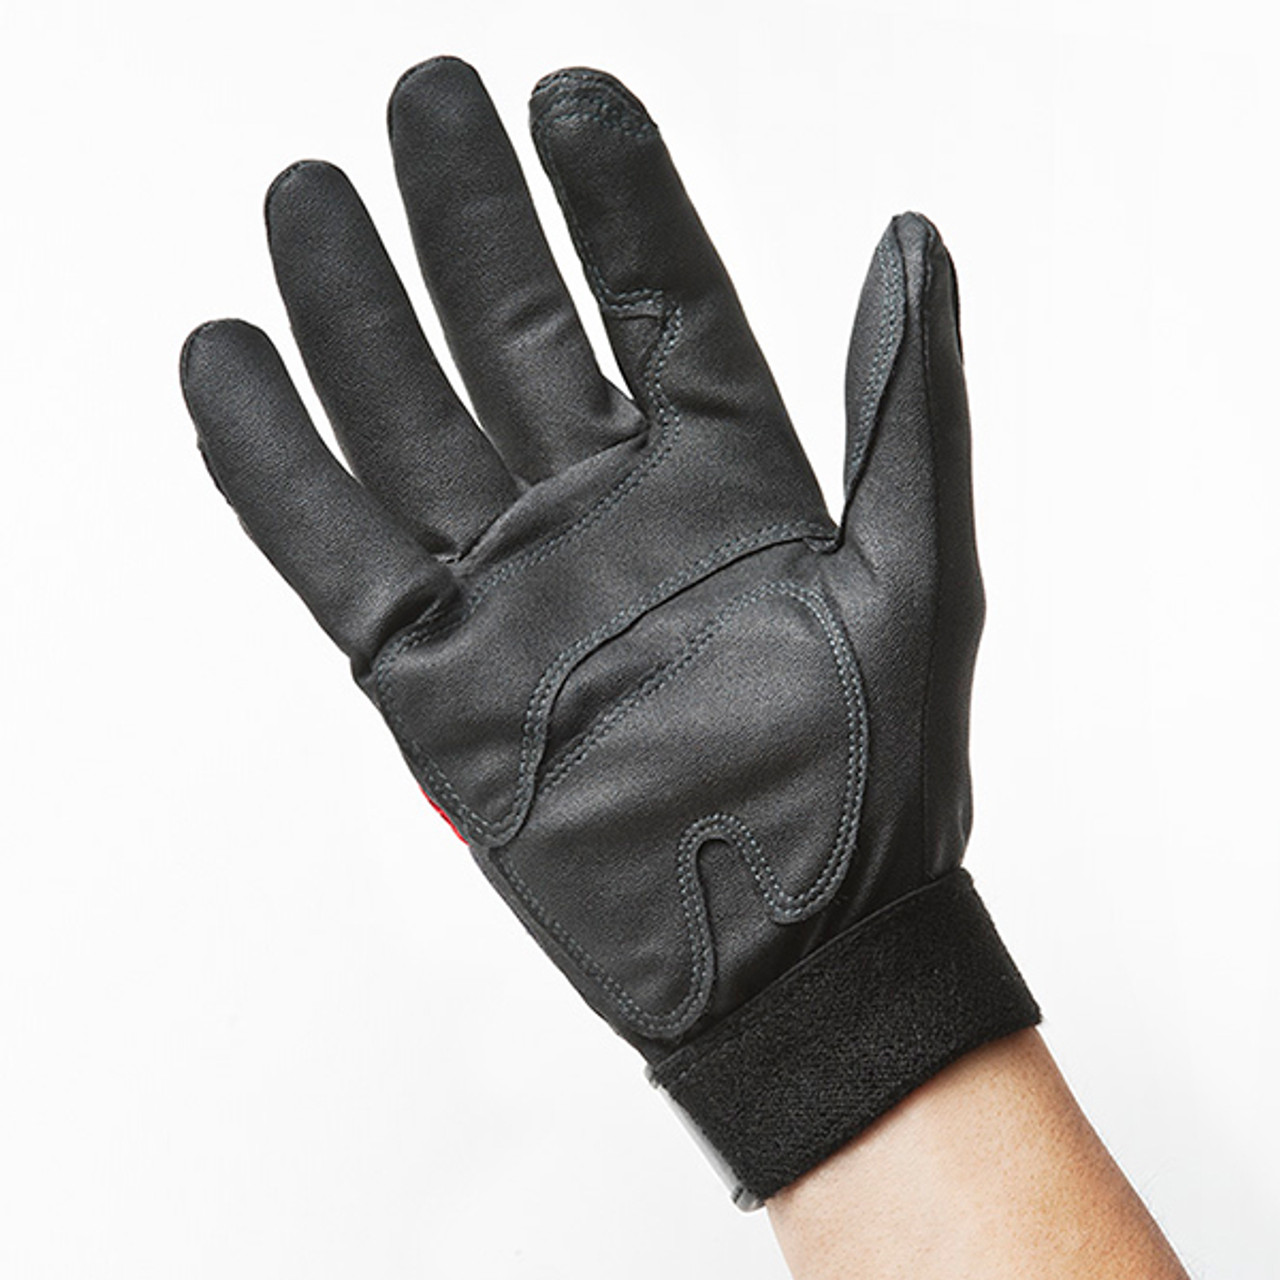 STI Mechanic Glove STSG13100*** at AVOJDM.com